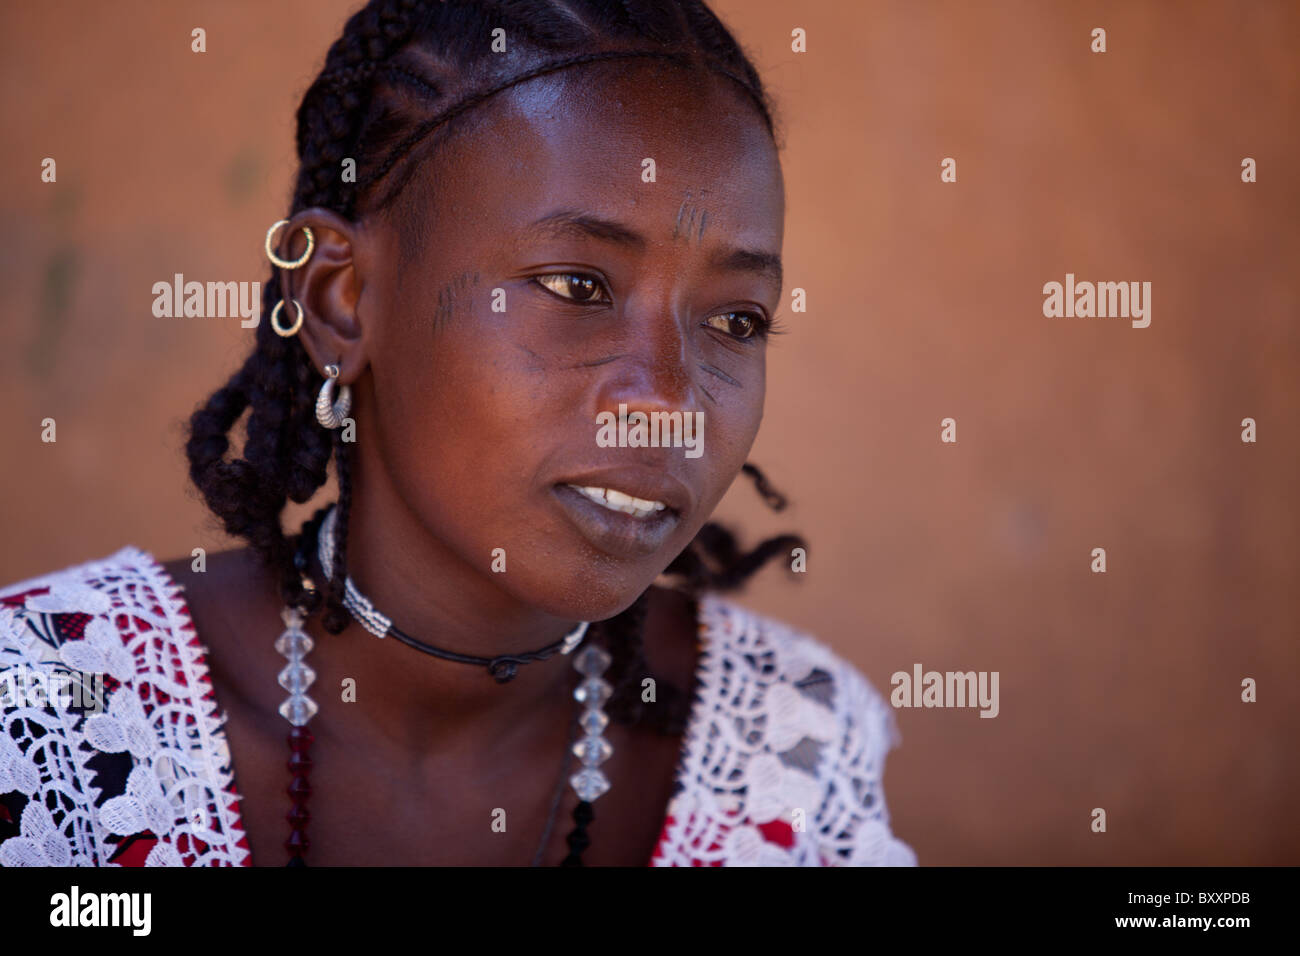 Fulani woman in Djibo in northern Burkina Faso. The woman sports the traditional facial scarring, that is considered - Stock Image